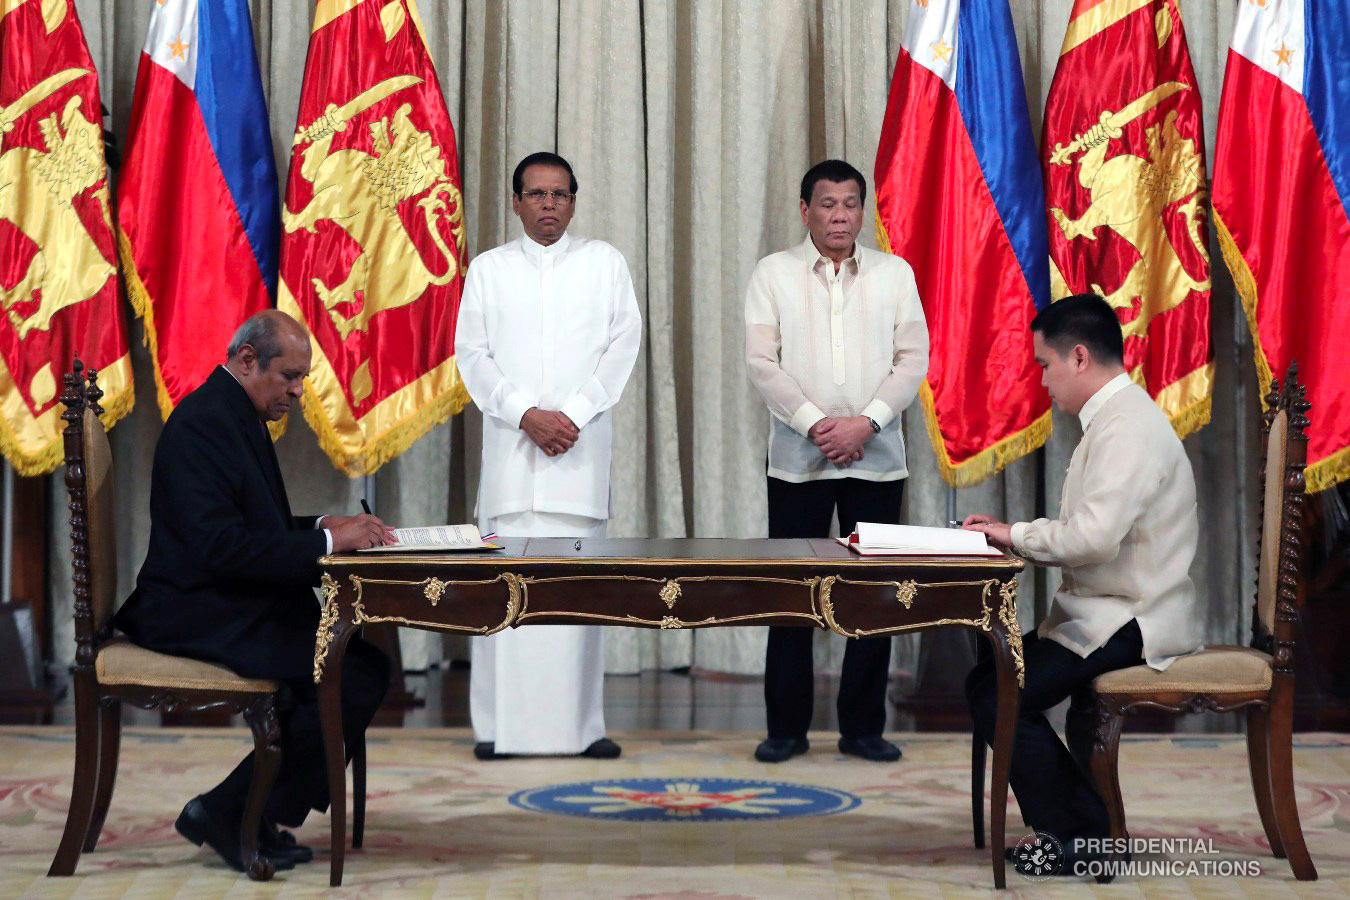 President Rodrigo Roa Duterte and Democratic Socialist Republic of Sri Lanka President Maithripala Sirisena witness the signing of agreements between Sri Lankan Minister of Foreign Affairs Tilak Marapana and Agriculture Undersecretary Waldo Carpio at the Malacañan Palace on January 16, 2019. The agreement is a Memorandum of Understanding on Cooperation in Agriculture, Fisheries and Related Fields between the Republic of the Philippines and the Democratic Socialist Republic of Sri Lanka ACE MORANDANTE/PRESIDENTIAL PHOTO